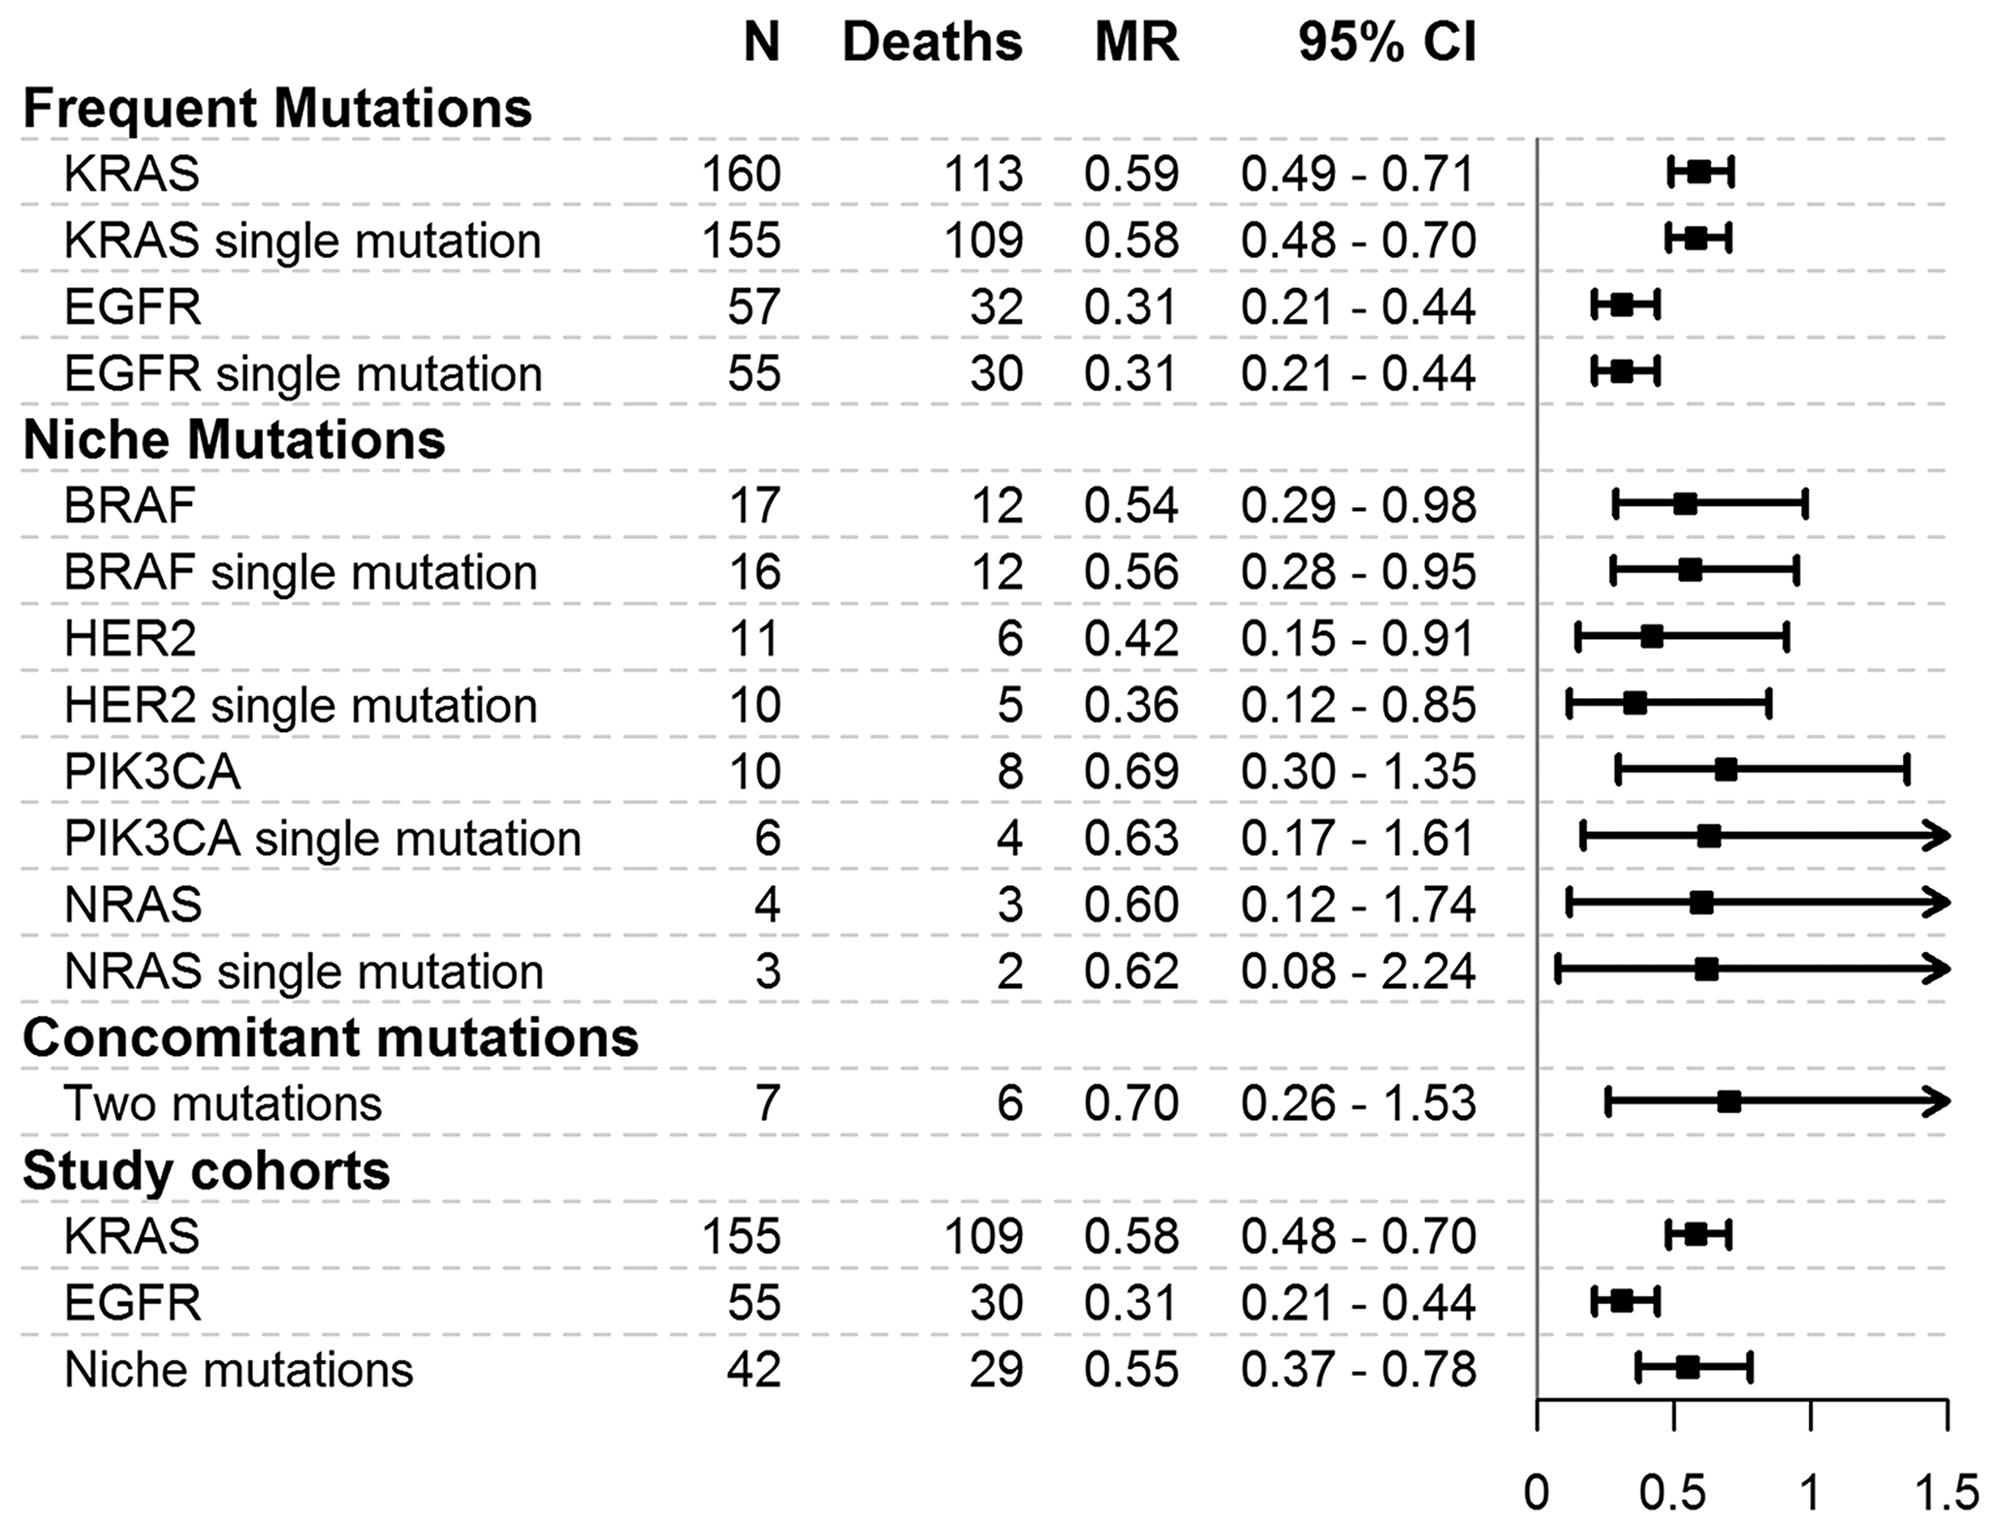 Mortality rates for mutations and cohorts considered in the study.